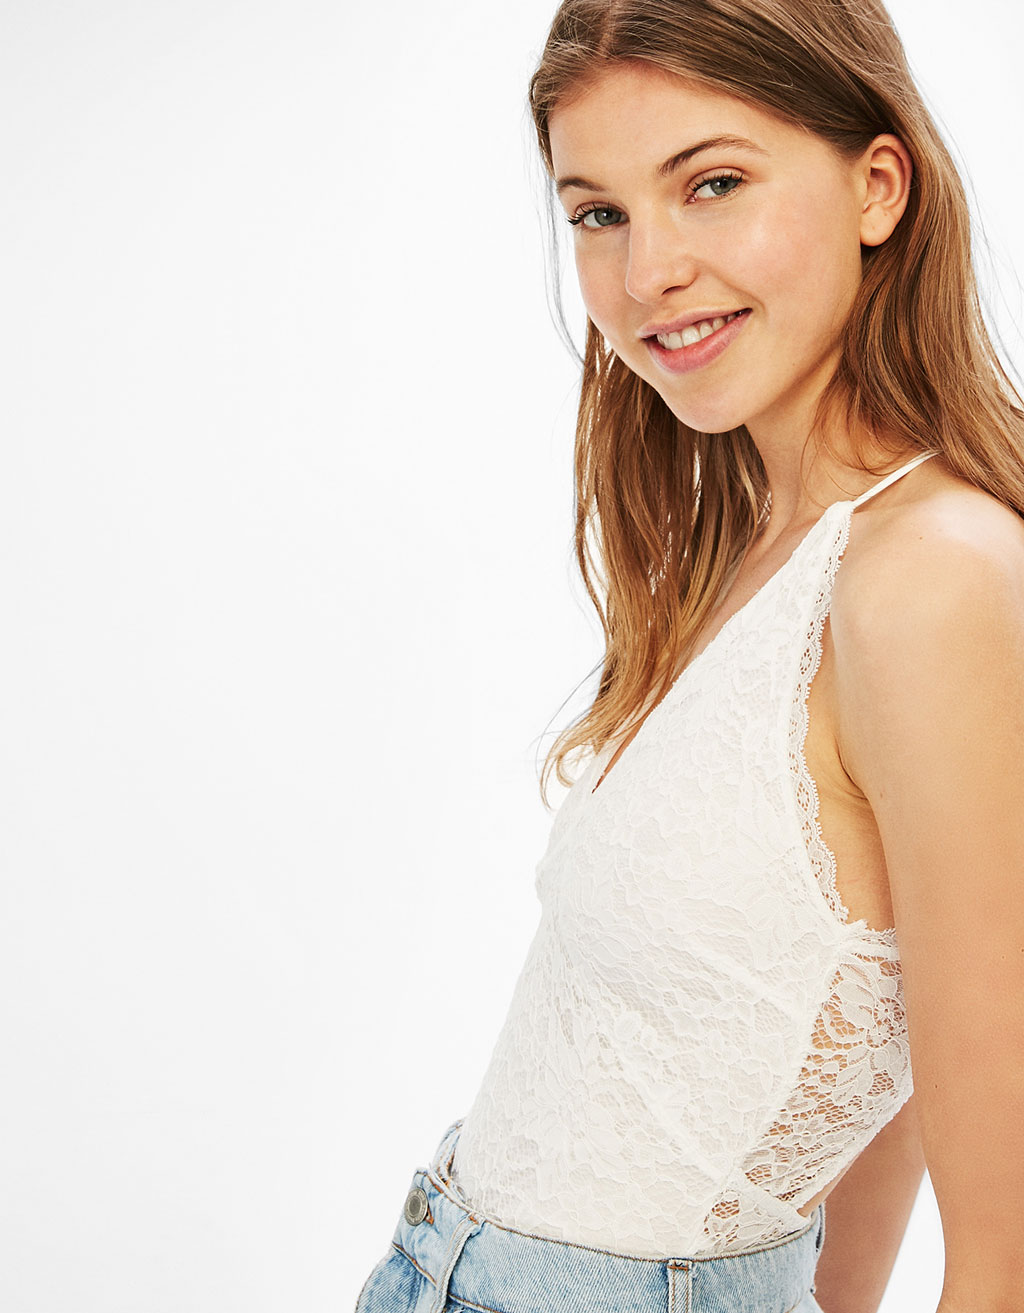 Lace bodysuit with thin straps